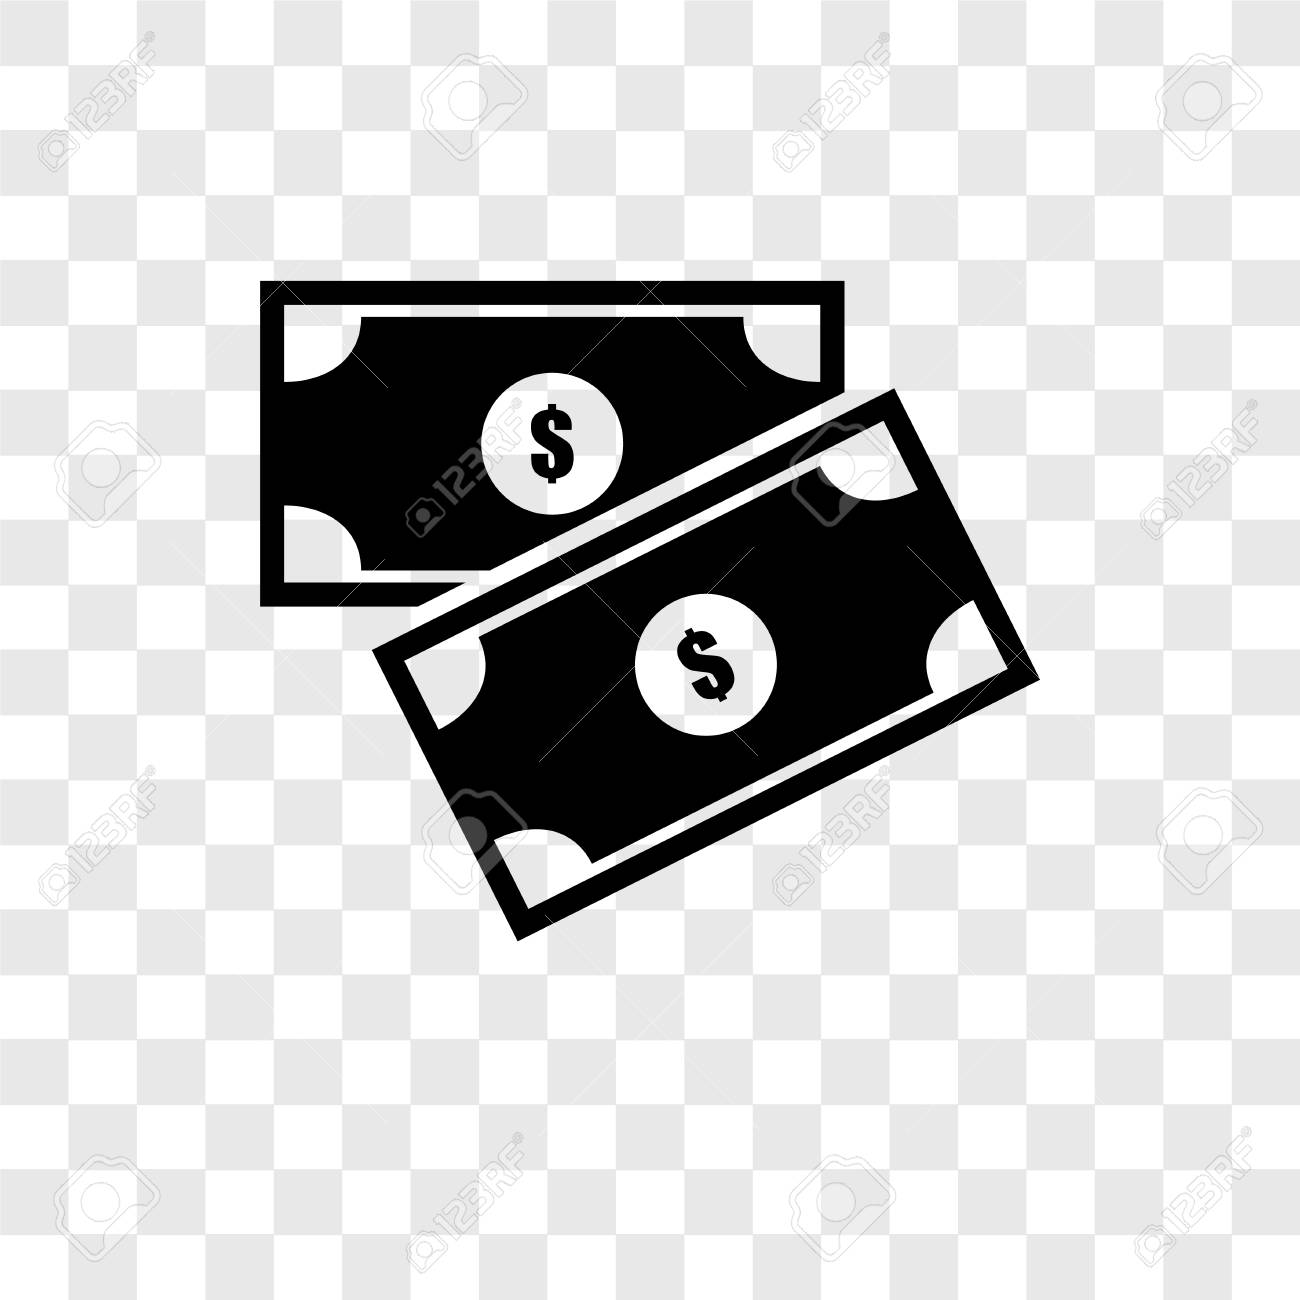 Money Vector Icon Isolated On Transparent Background Money Transparency